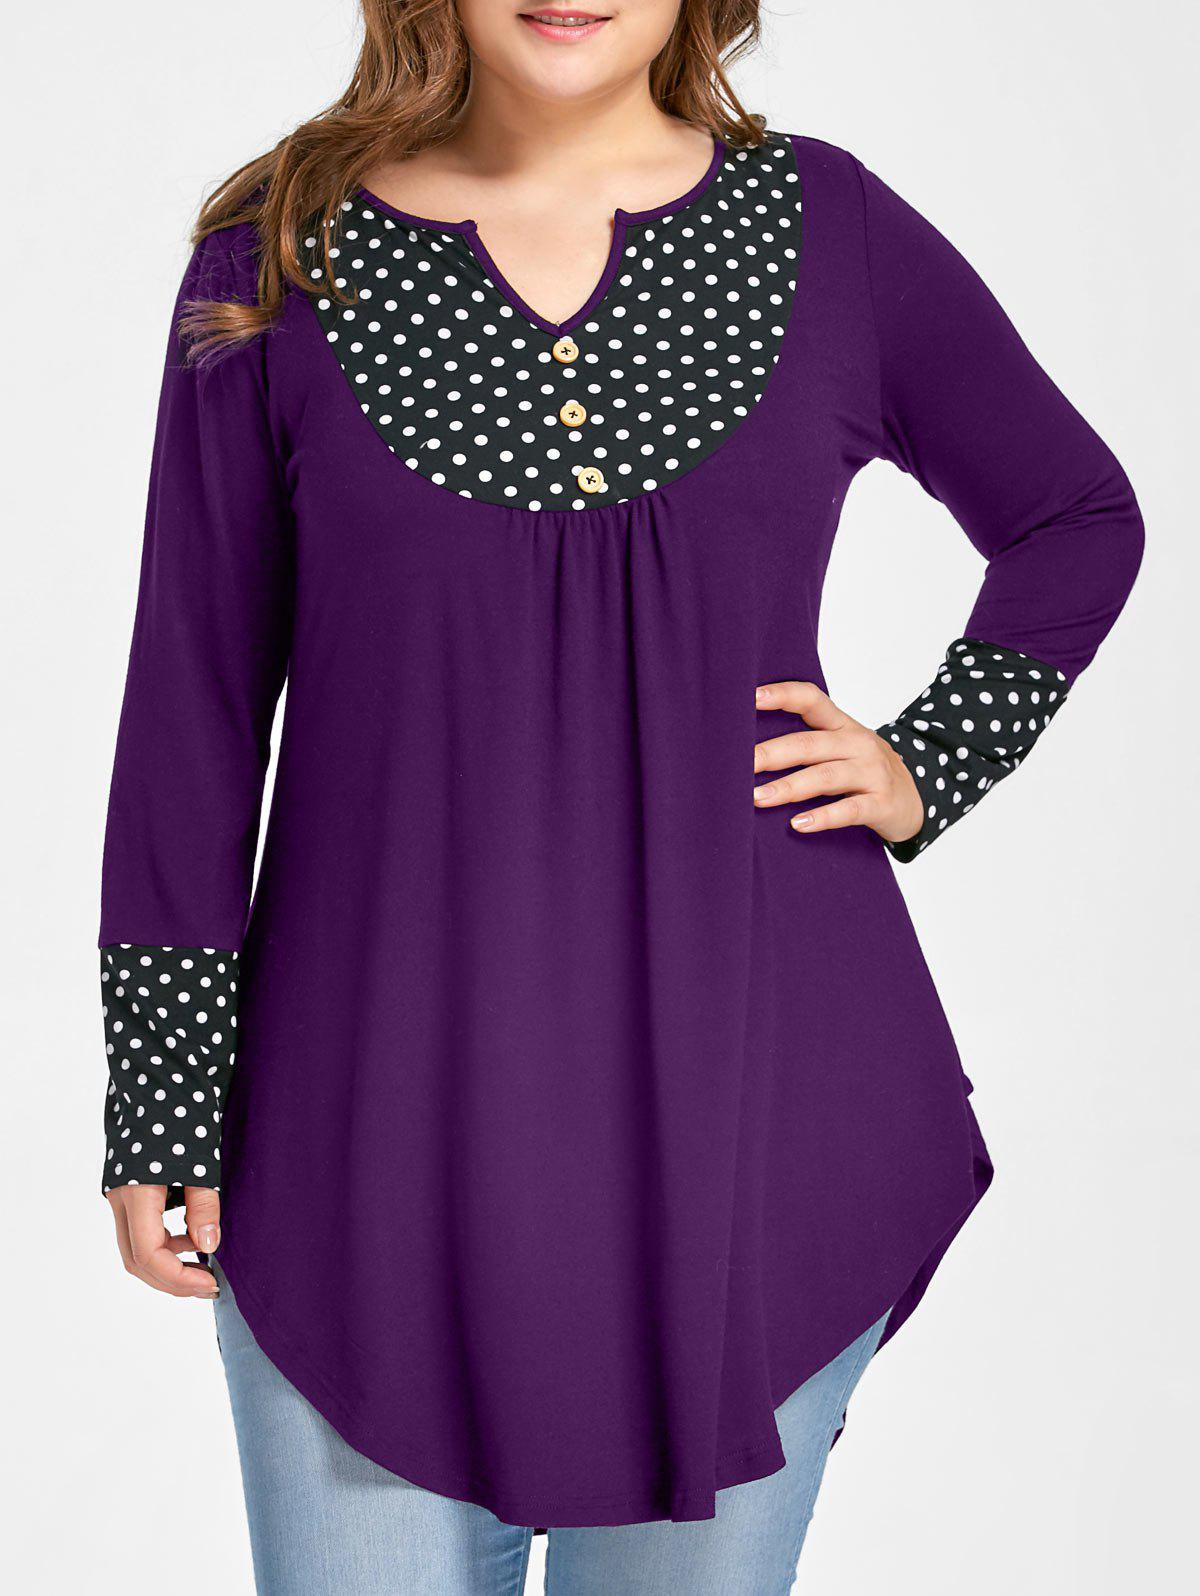 Plus Size Polka Dot Curved Hem TopWOMEN<br><br>Size: 5XL; Color: PURPLE; Material: Polyester,Spandex; Shirt Length: Long; Sleeve Length: Full; Collar: Round Neck; Style: Casual; Season: Fall,Spring; Pattern Type: Polka Dot; Weight: 0.3300kg; Package Contents: 1 x Top;